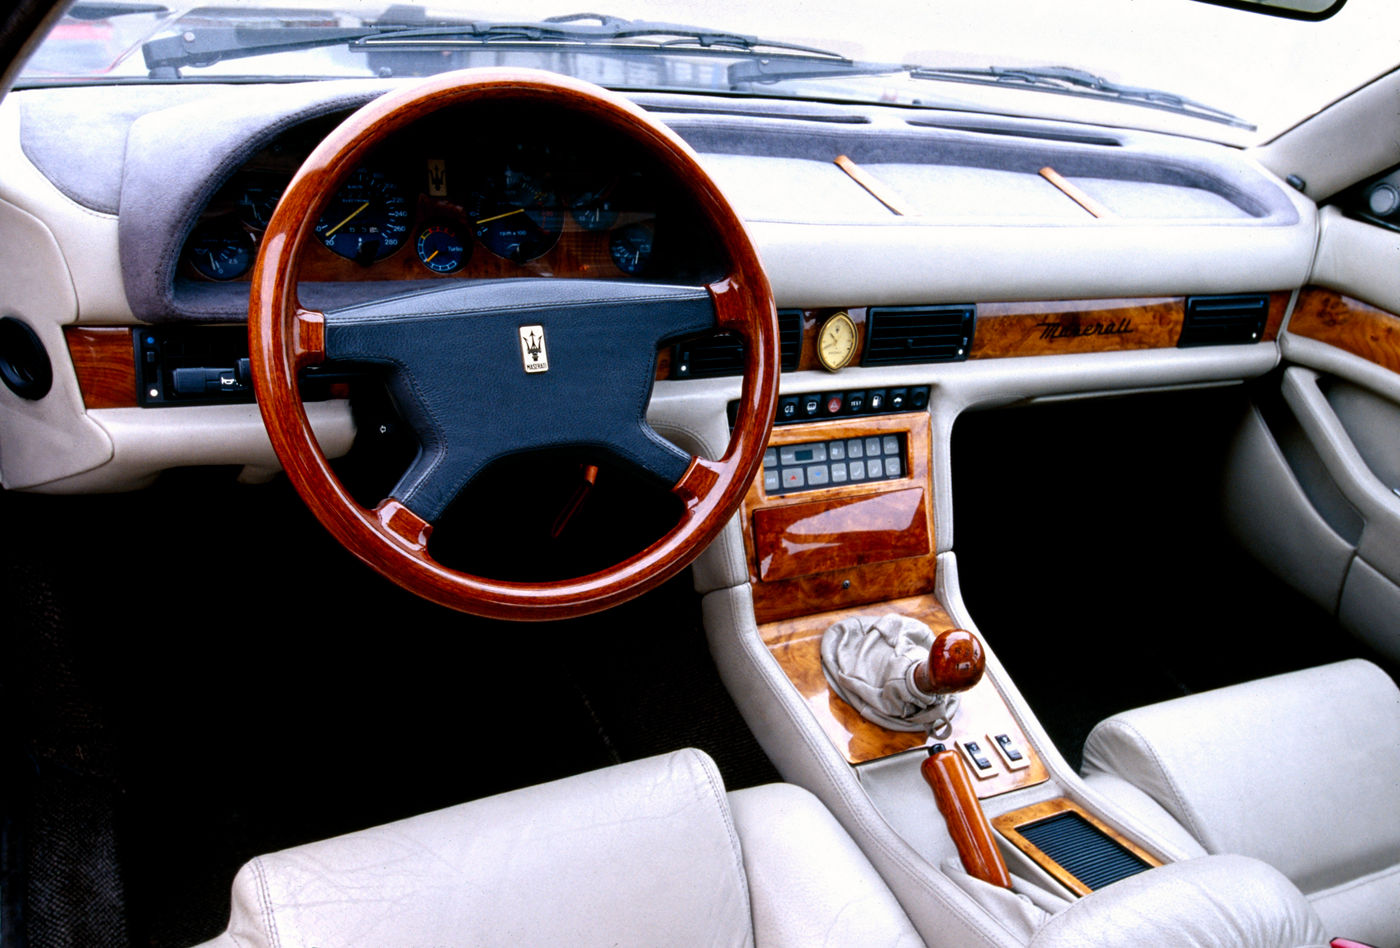 1989 Maserati Karif - Biturbo - interior of the classic car model